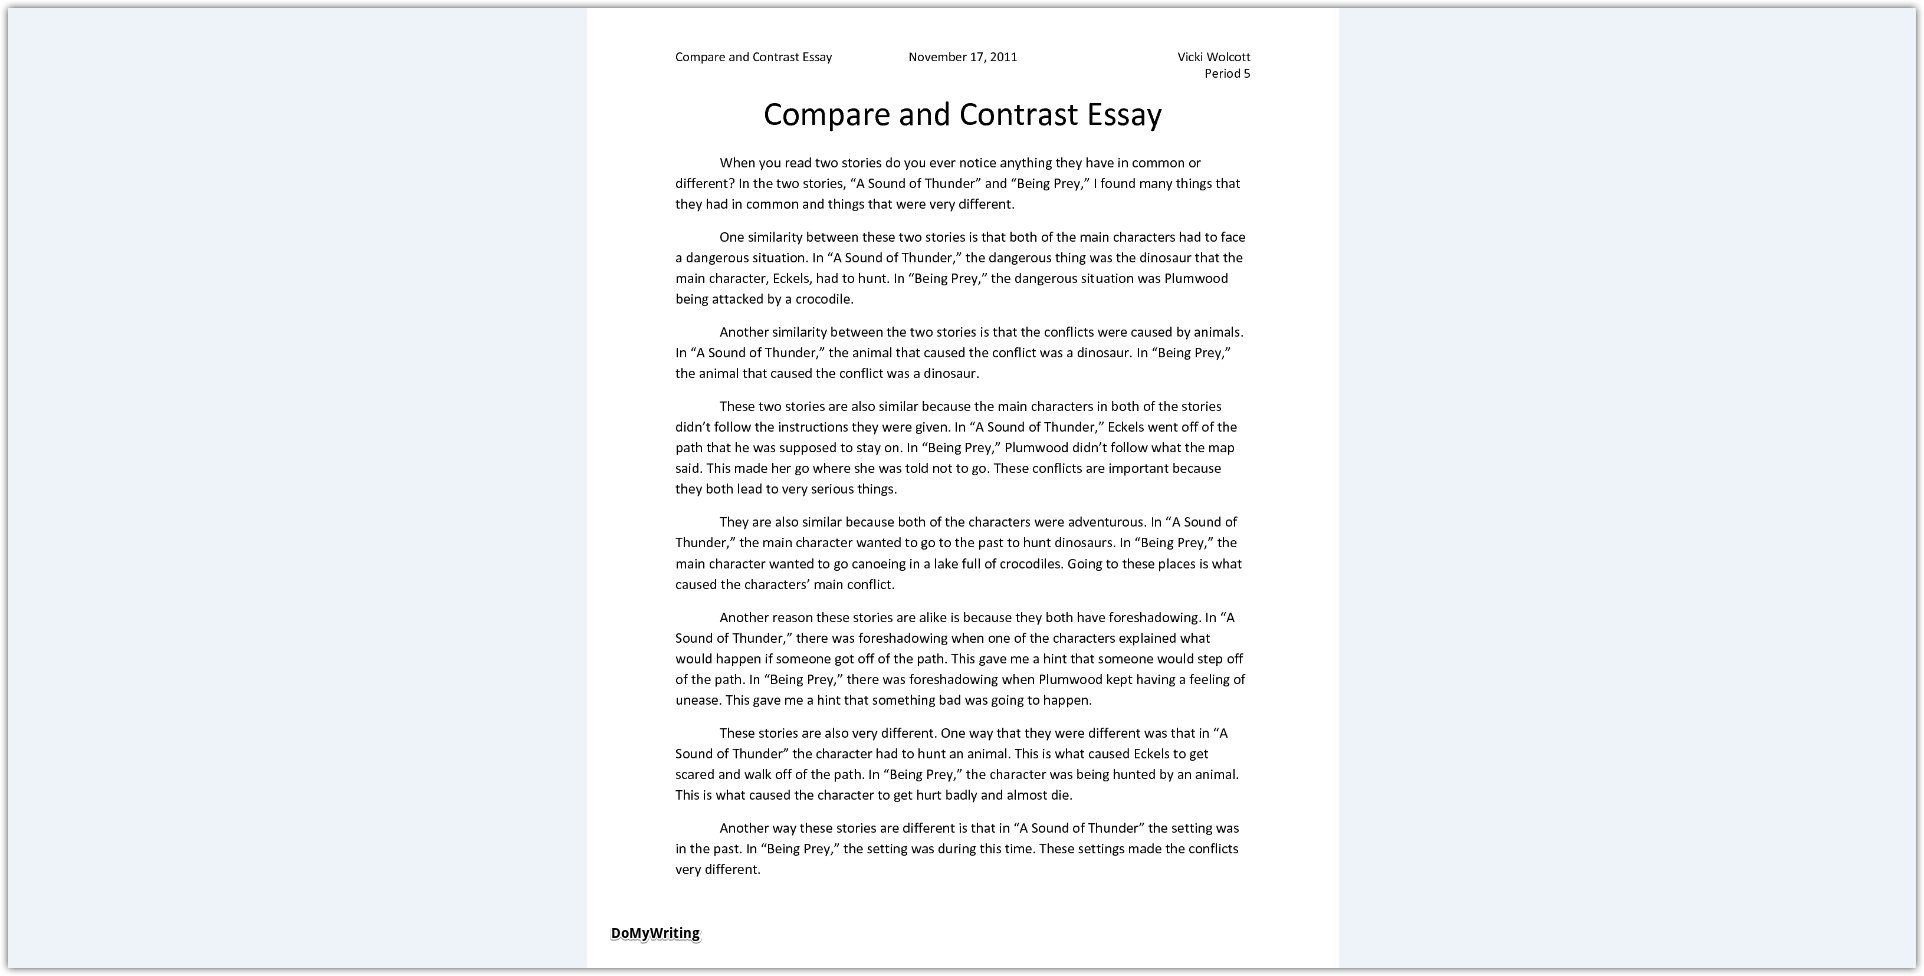 Compare And Contrast Essay Examples For High School  Essay Examples For High School Students also Thesis Example Essay Guided Writing A Winning Compare And Contrast Essay English Literature Essay Structure